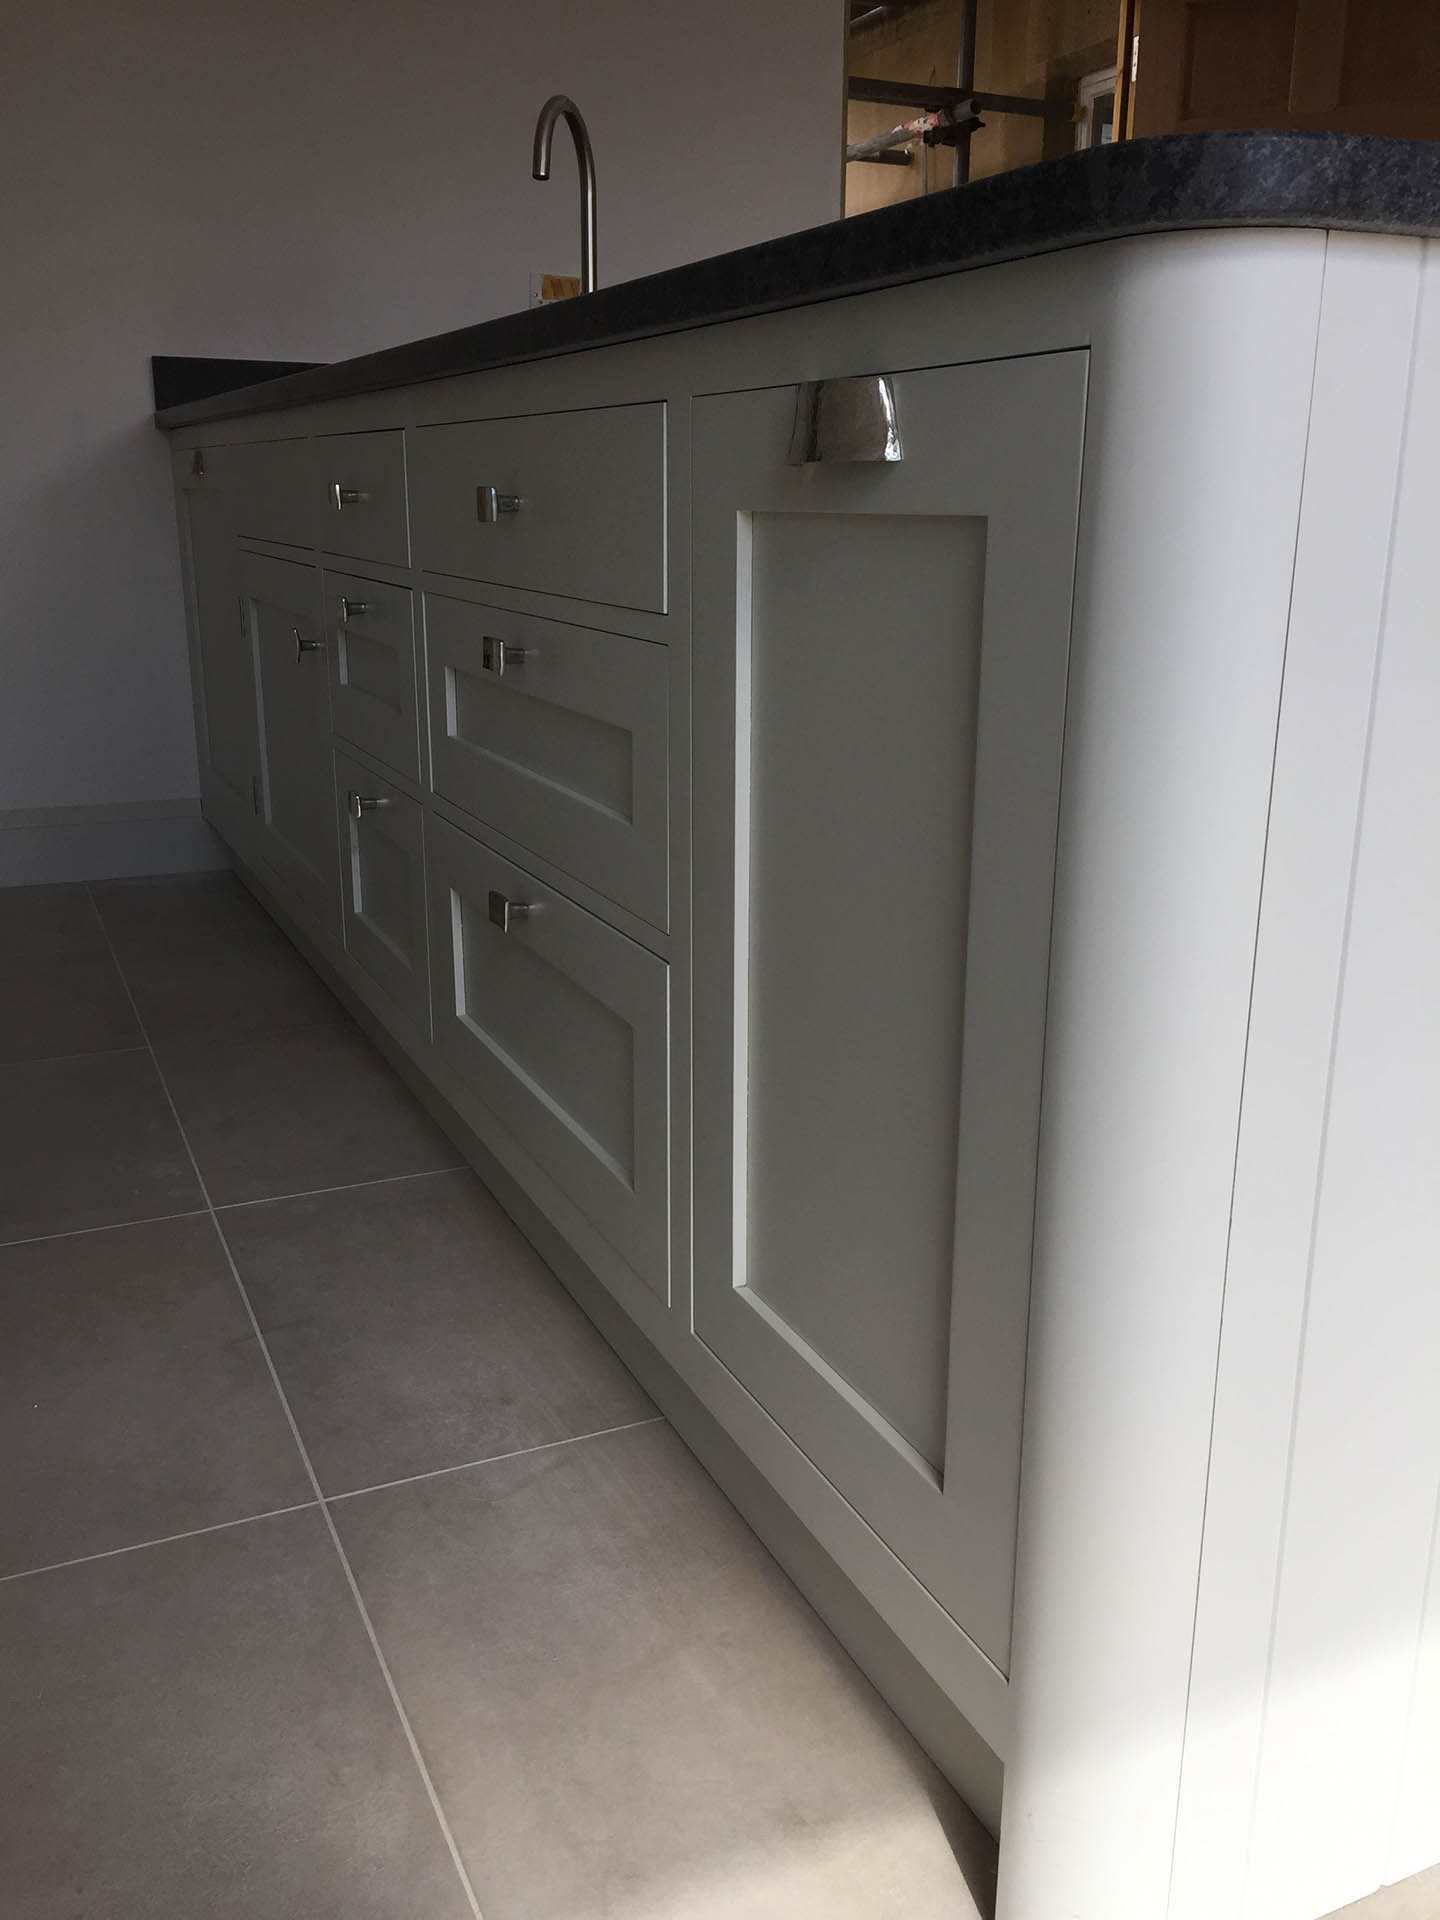 The cupboard doors of a kitchen counter,